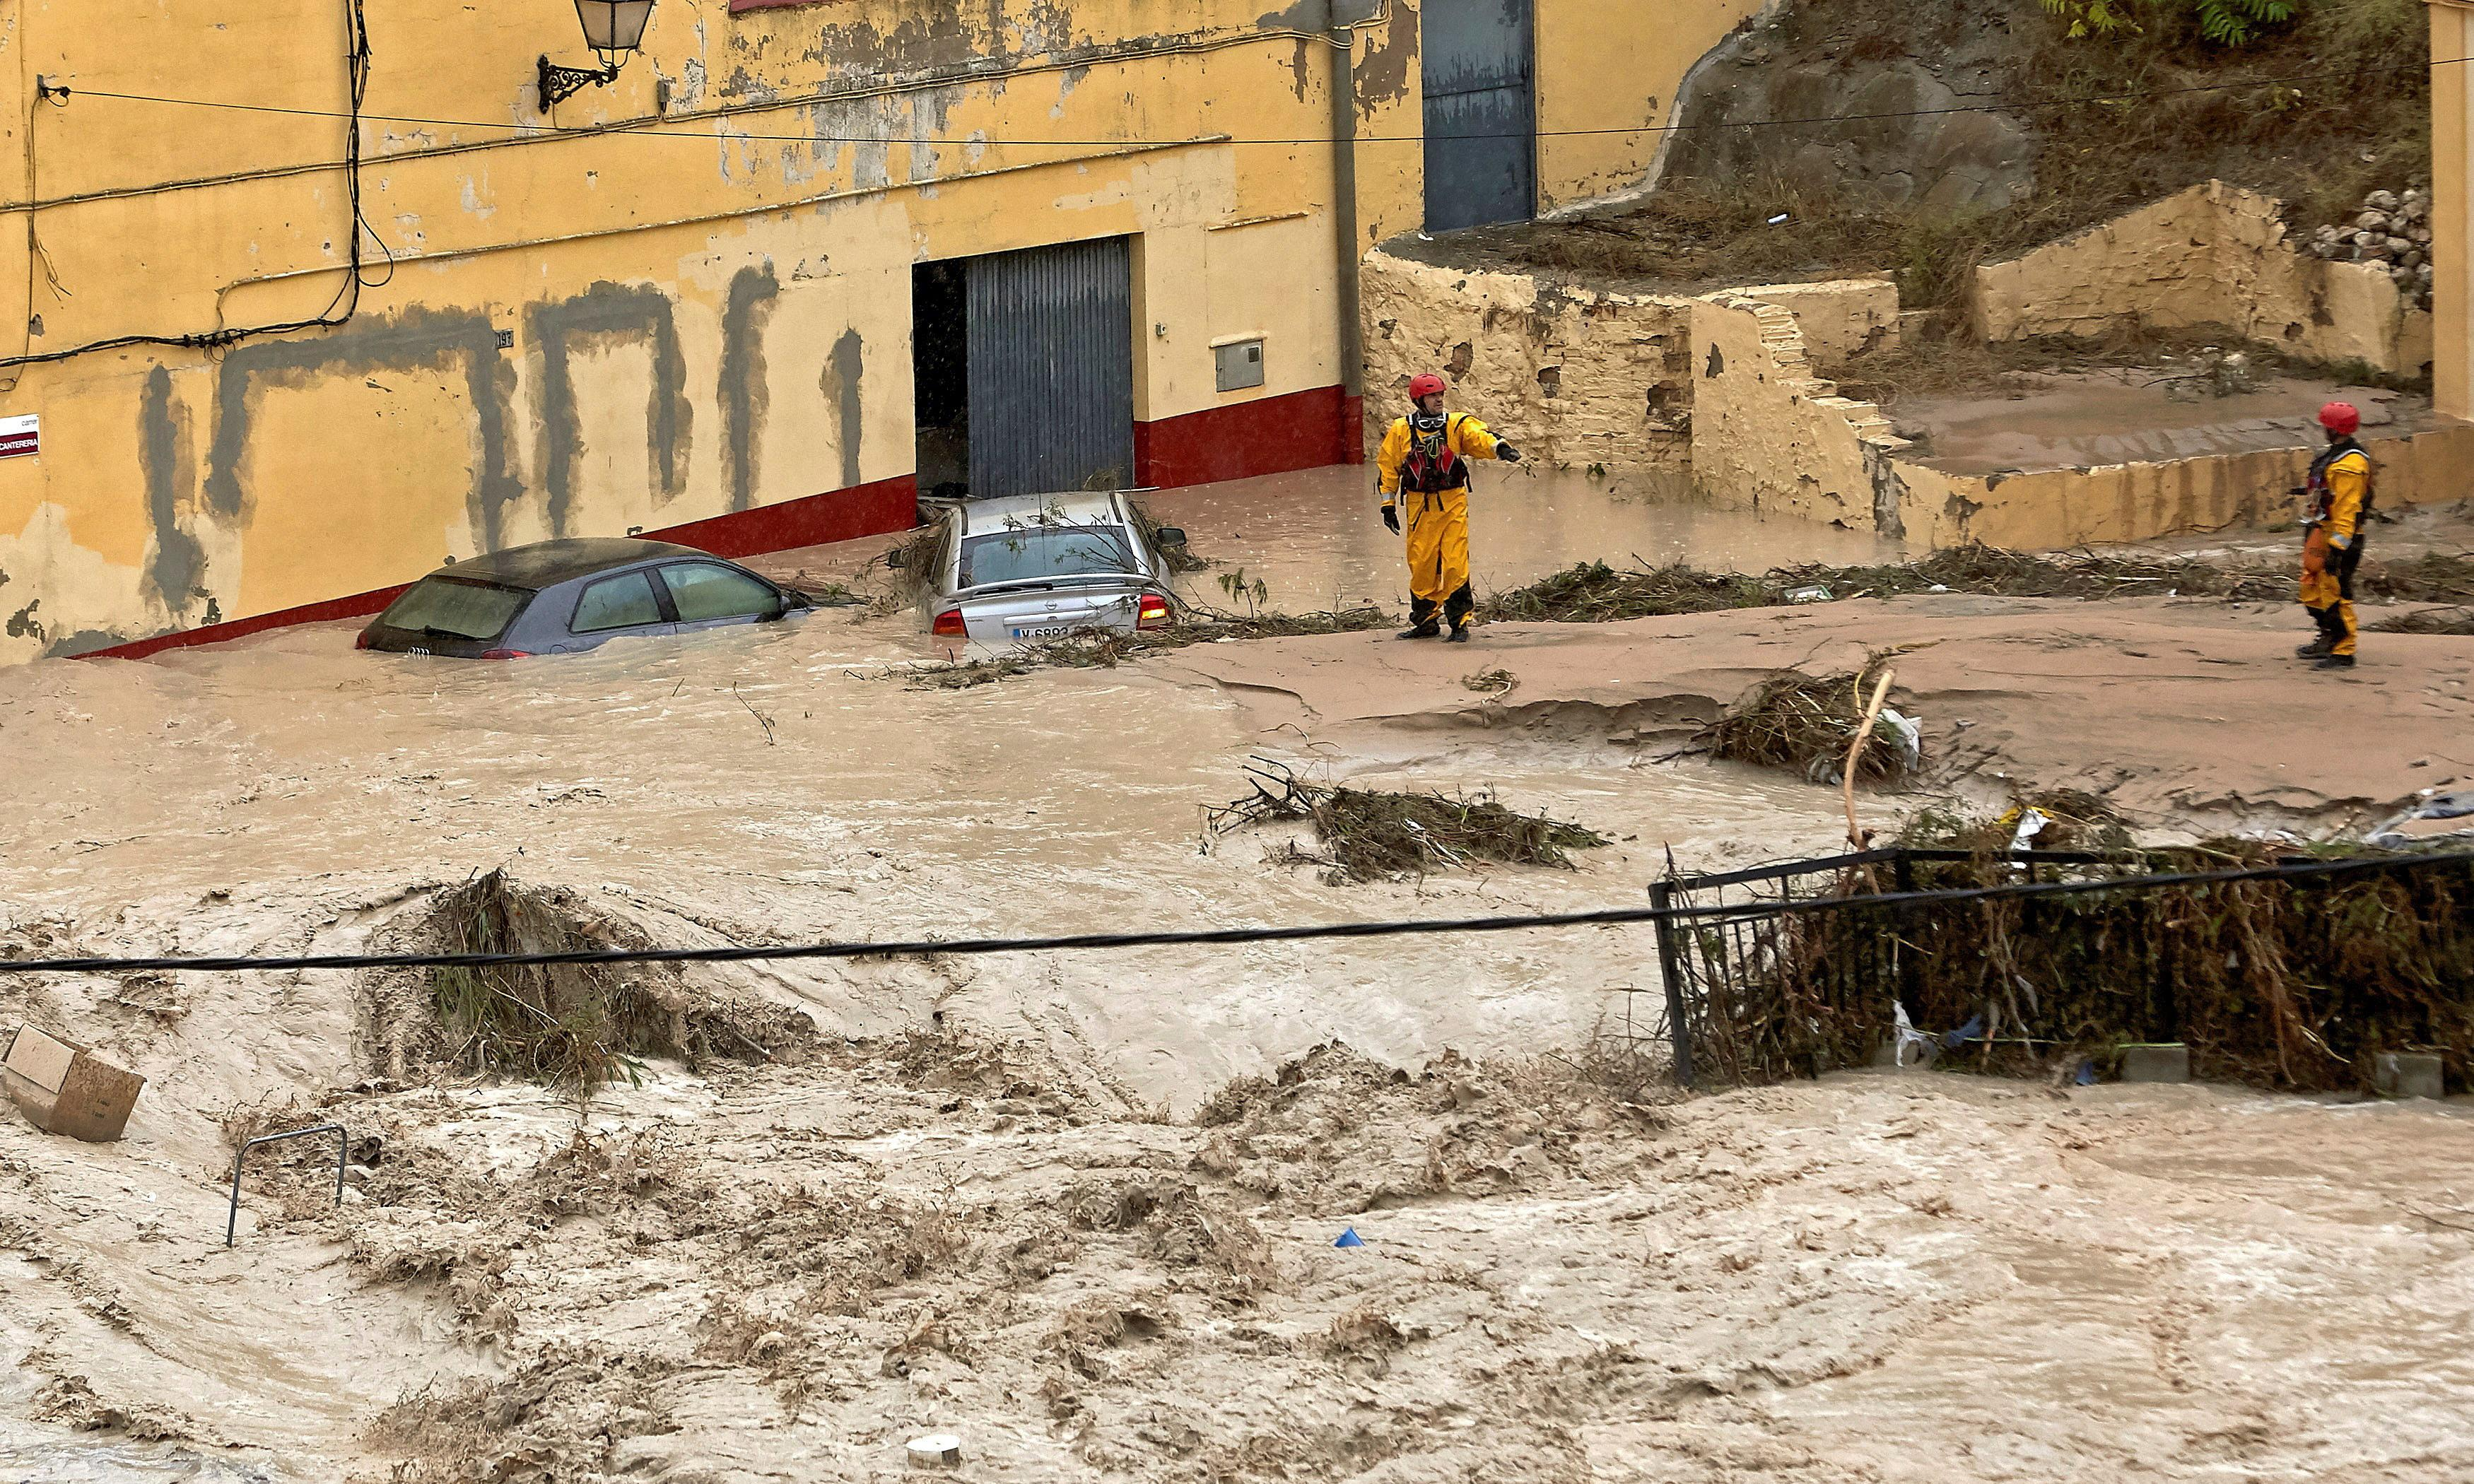 Storm brings heaviest rainfall on record to parts of eastern Spain